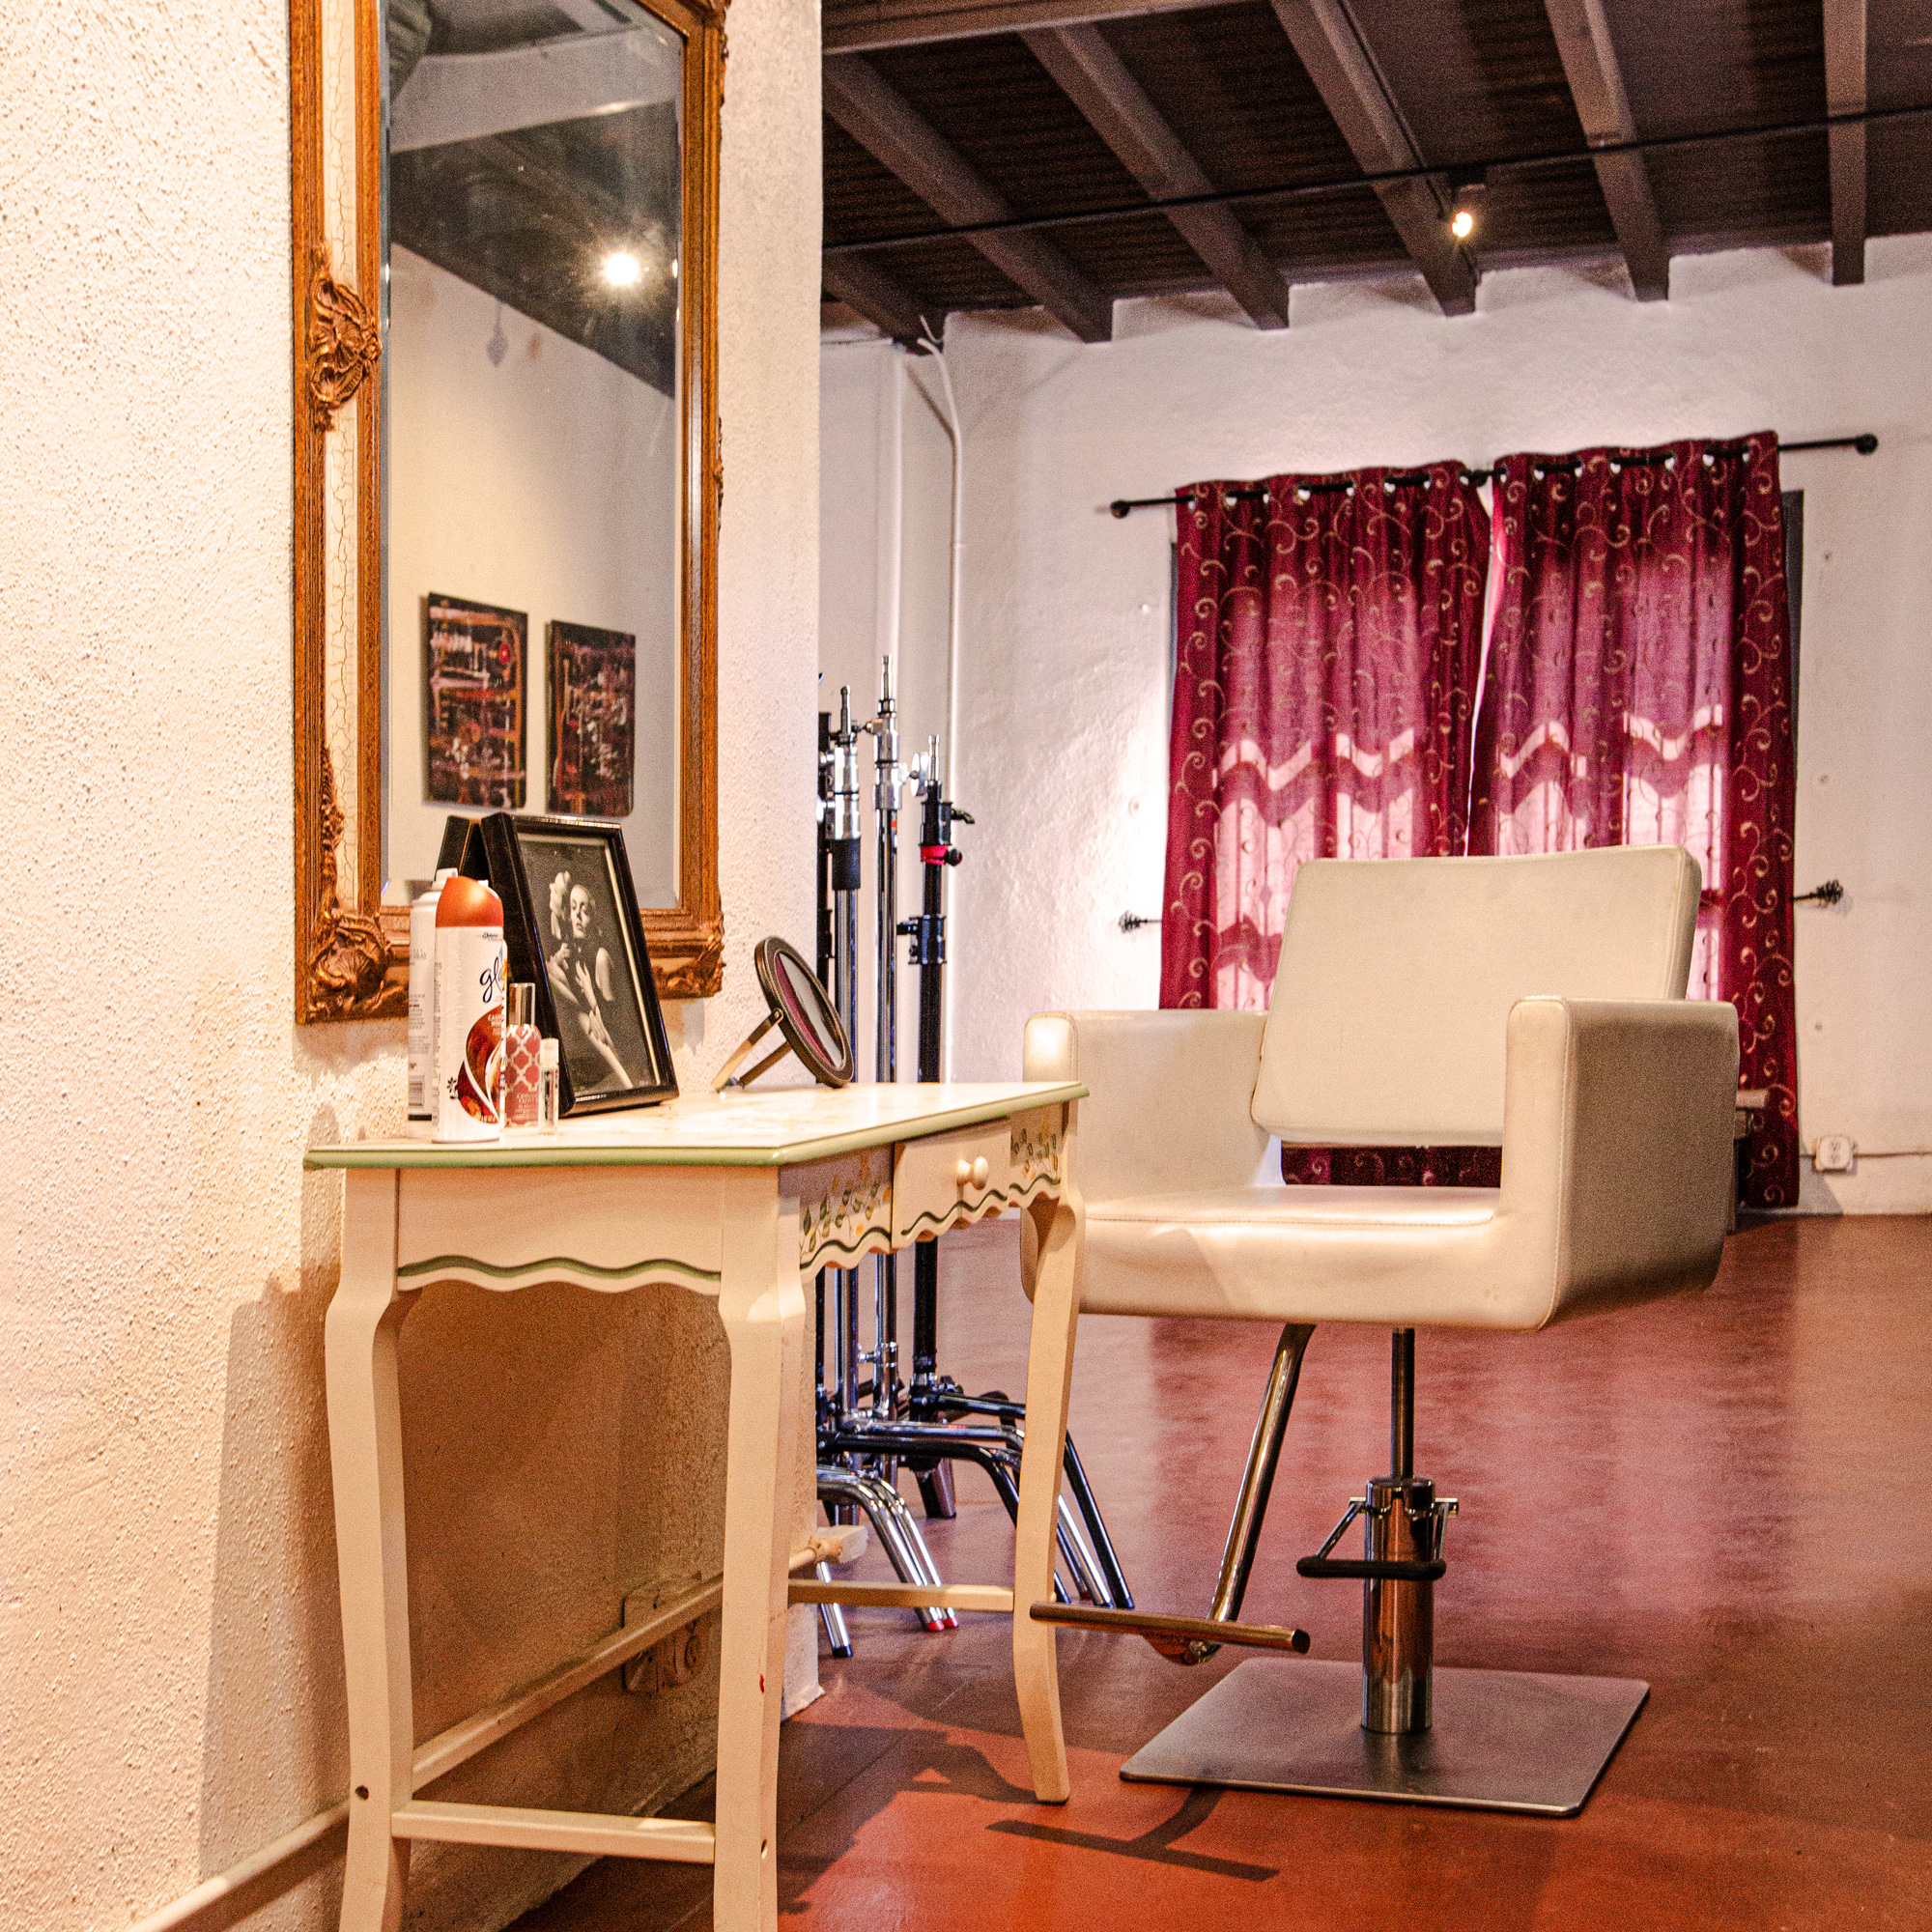 dedicated hair and makeup area - Whether your clients or models are doing their own hair and makeup or working with a pro, this area is well-lit with a tall chair and big mirror. There's a clean, bright, ADA-accessible studio restroom right down the hall.